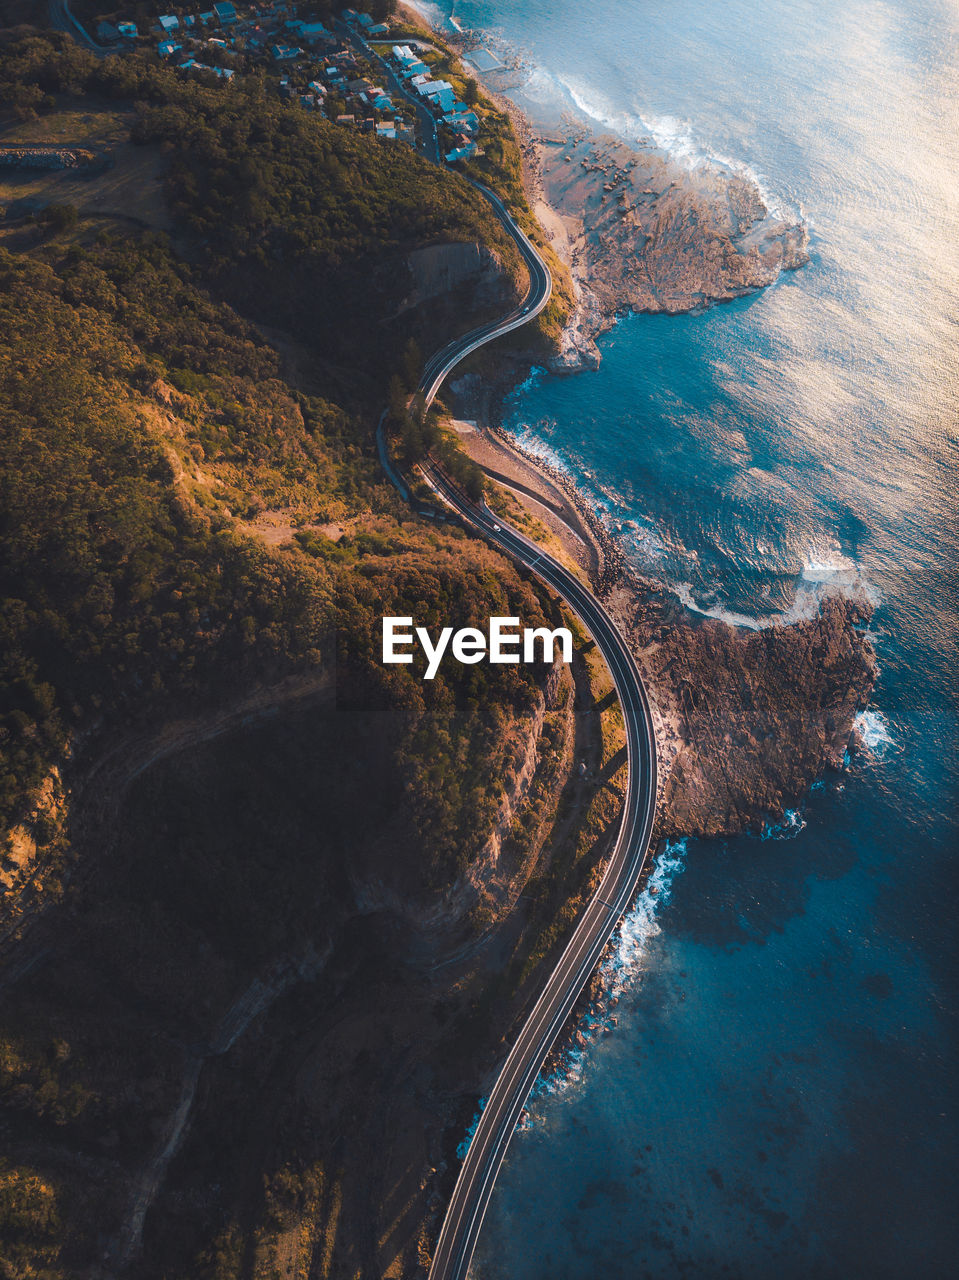 Aerial View Of Winding Road By Sea